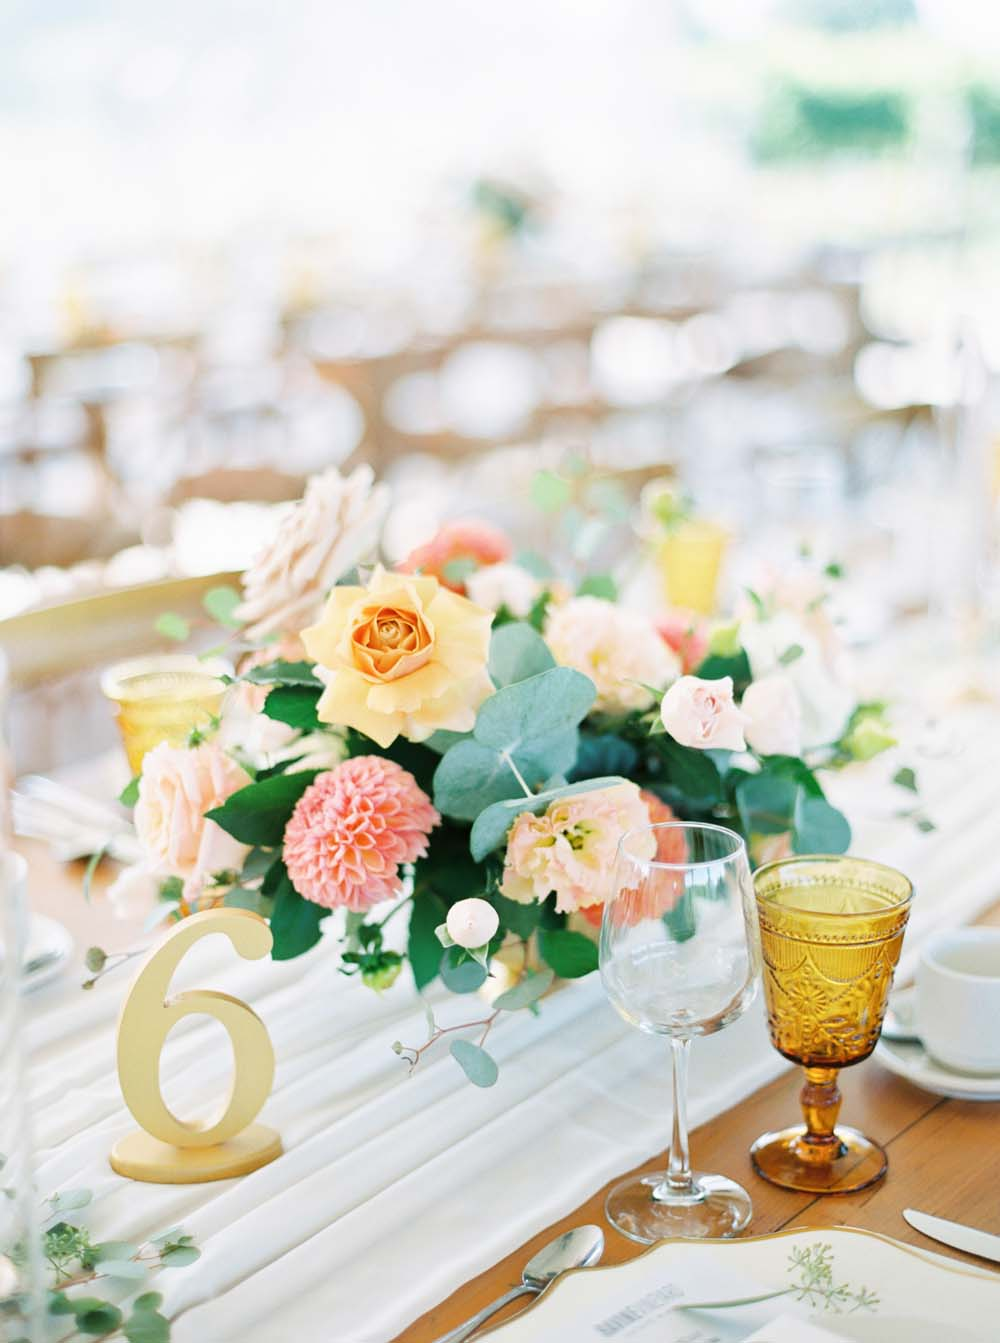 A Floral Peach Celebration in St. David's, Ontario - Table 6